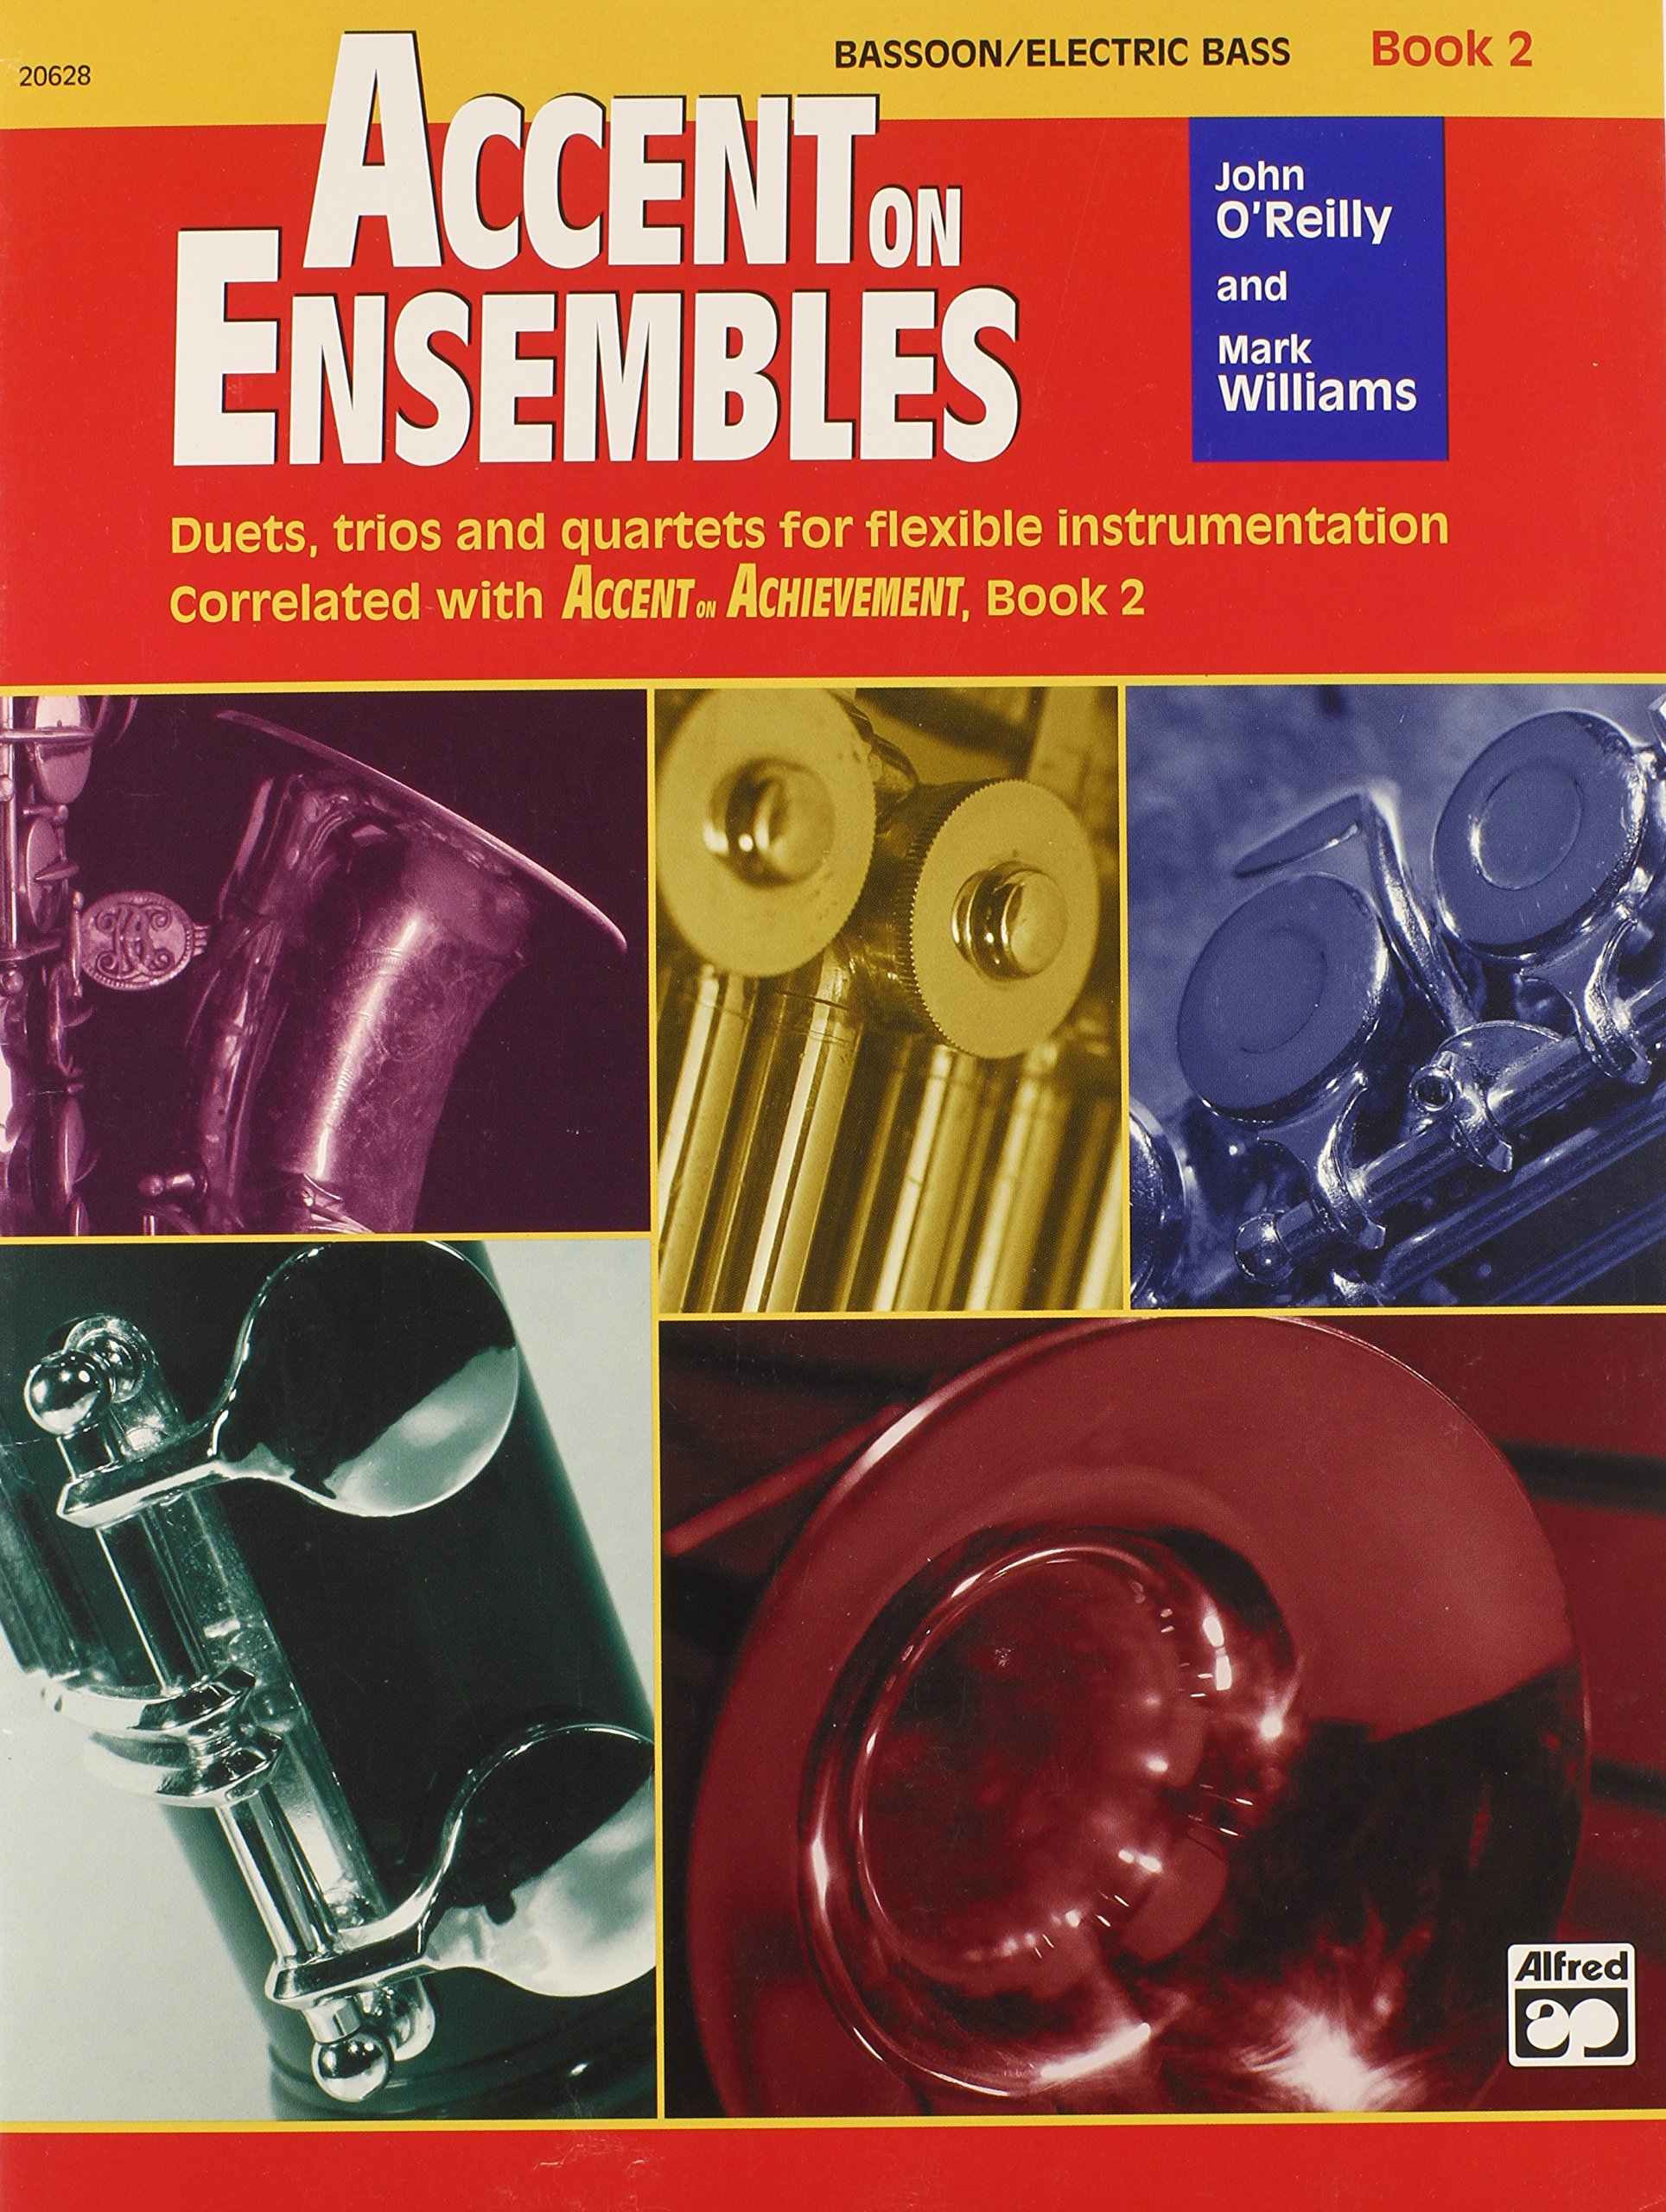 Accent on Ensembles, Bk 2: Bassoon/Electric Bass (Accent on Achievement) ebook